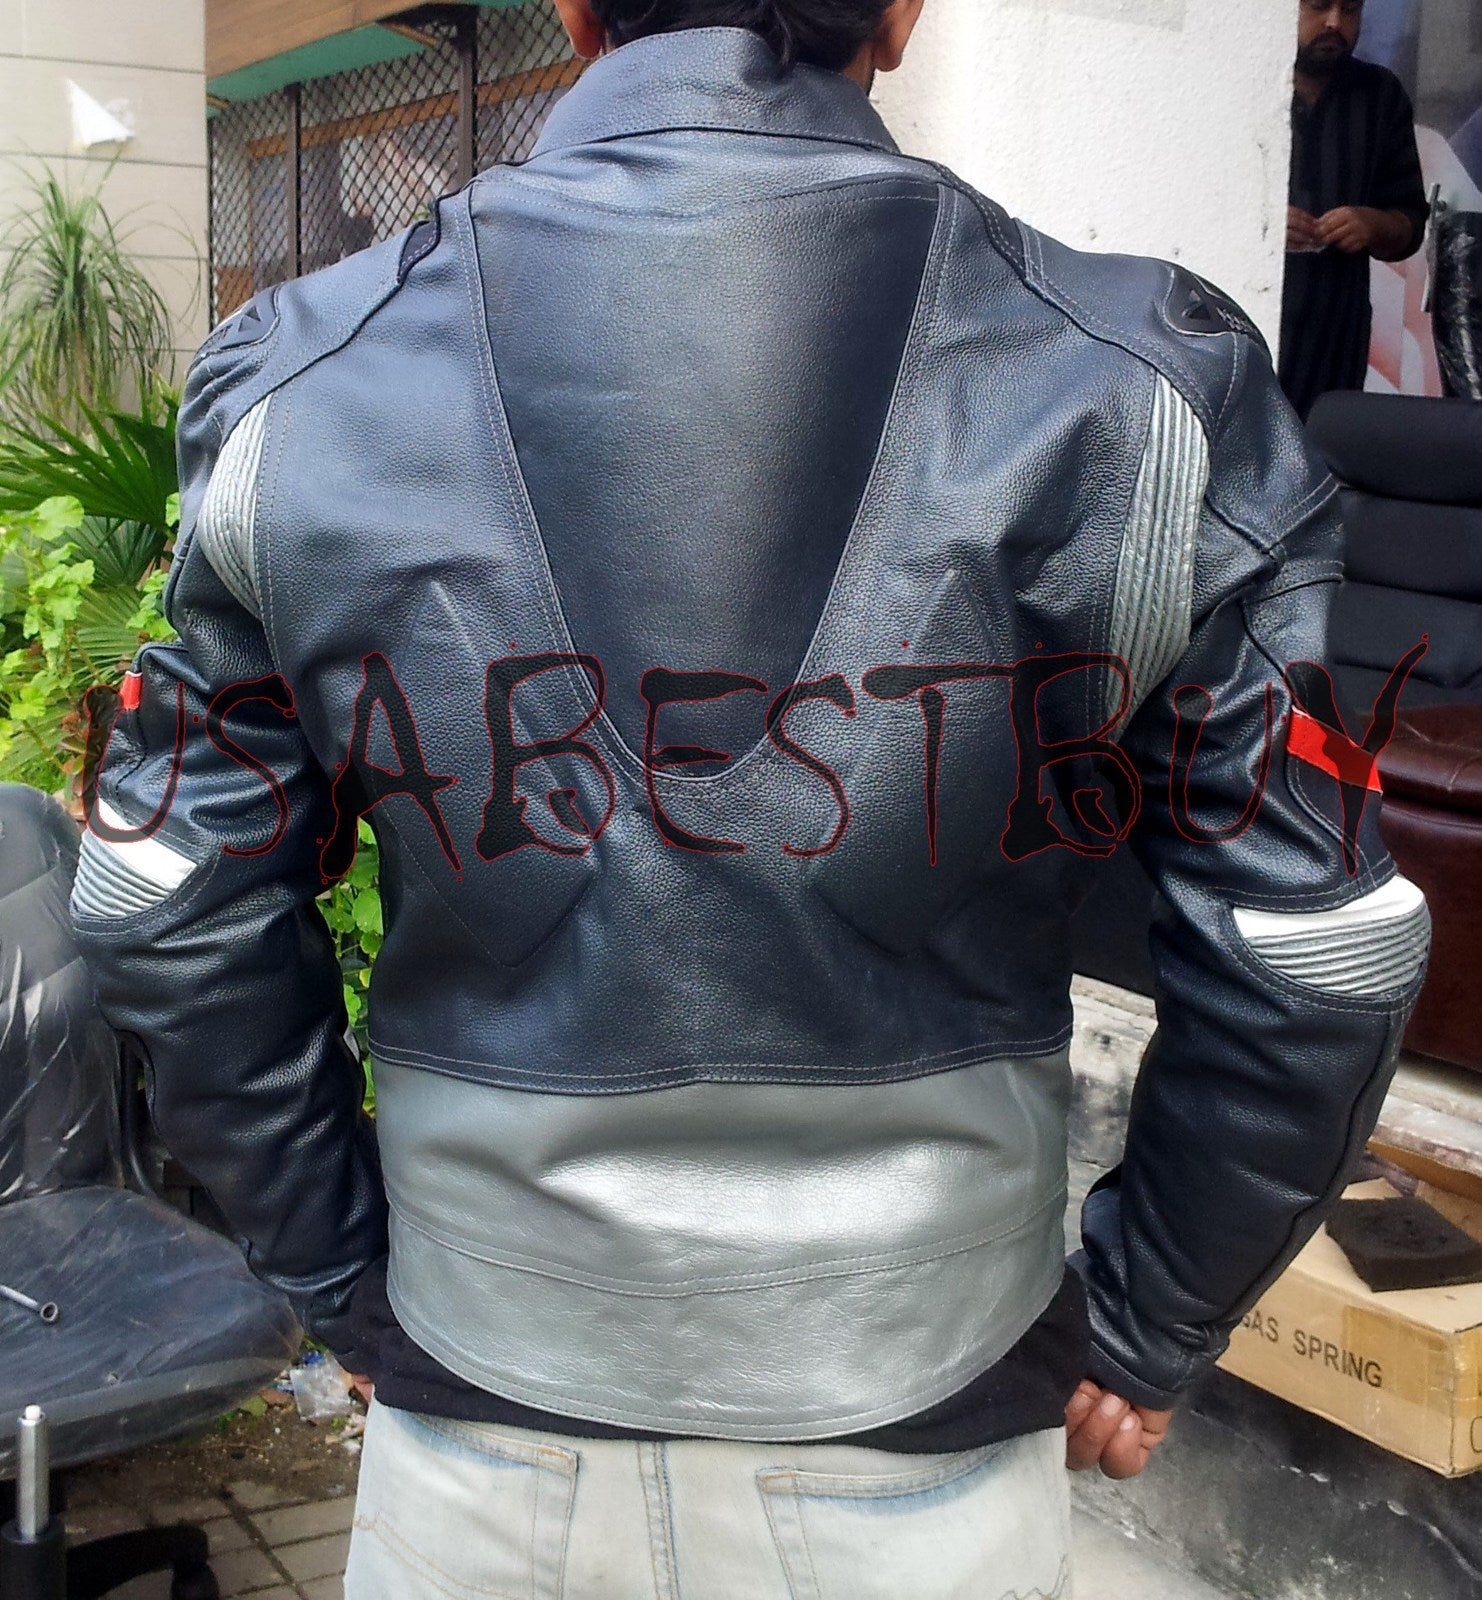 Custom Handmade Motorcycle Leather Jacket in Unique Latest Style with Pads